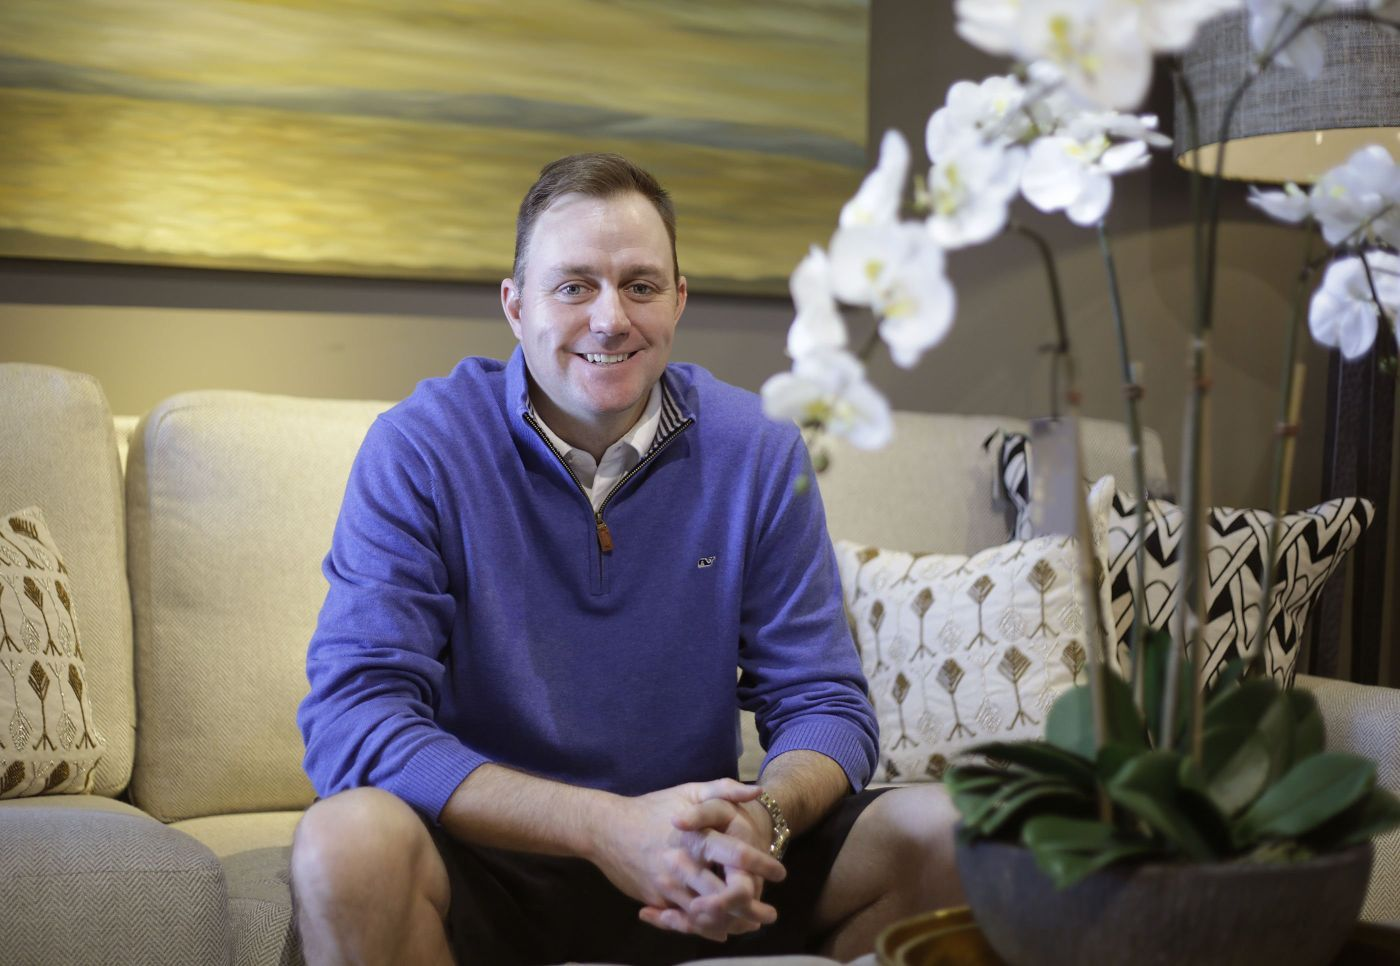 Luxe Furniture And Design Owner Chris Noel